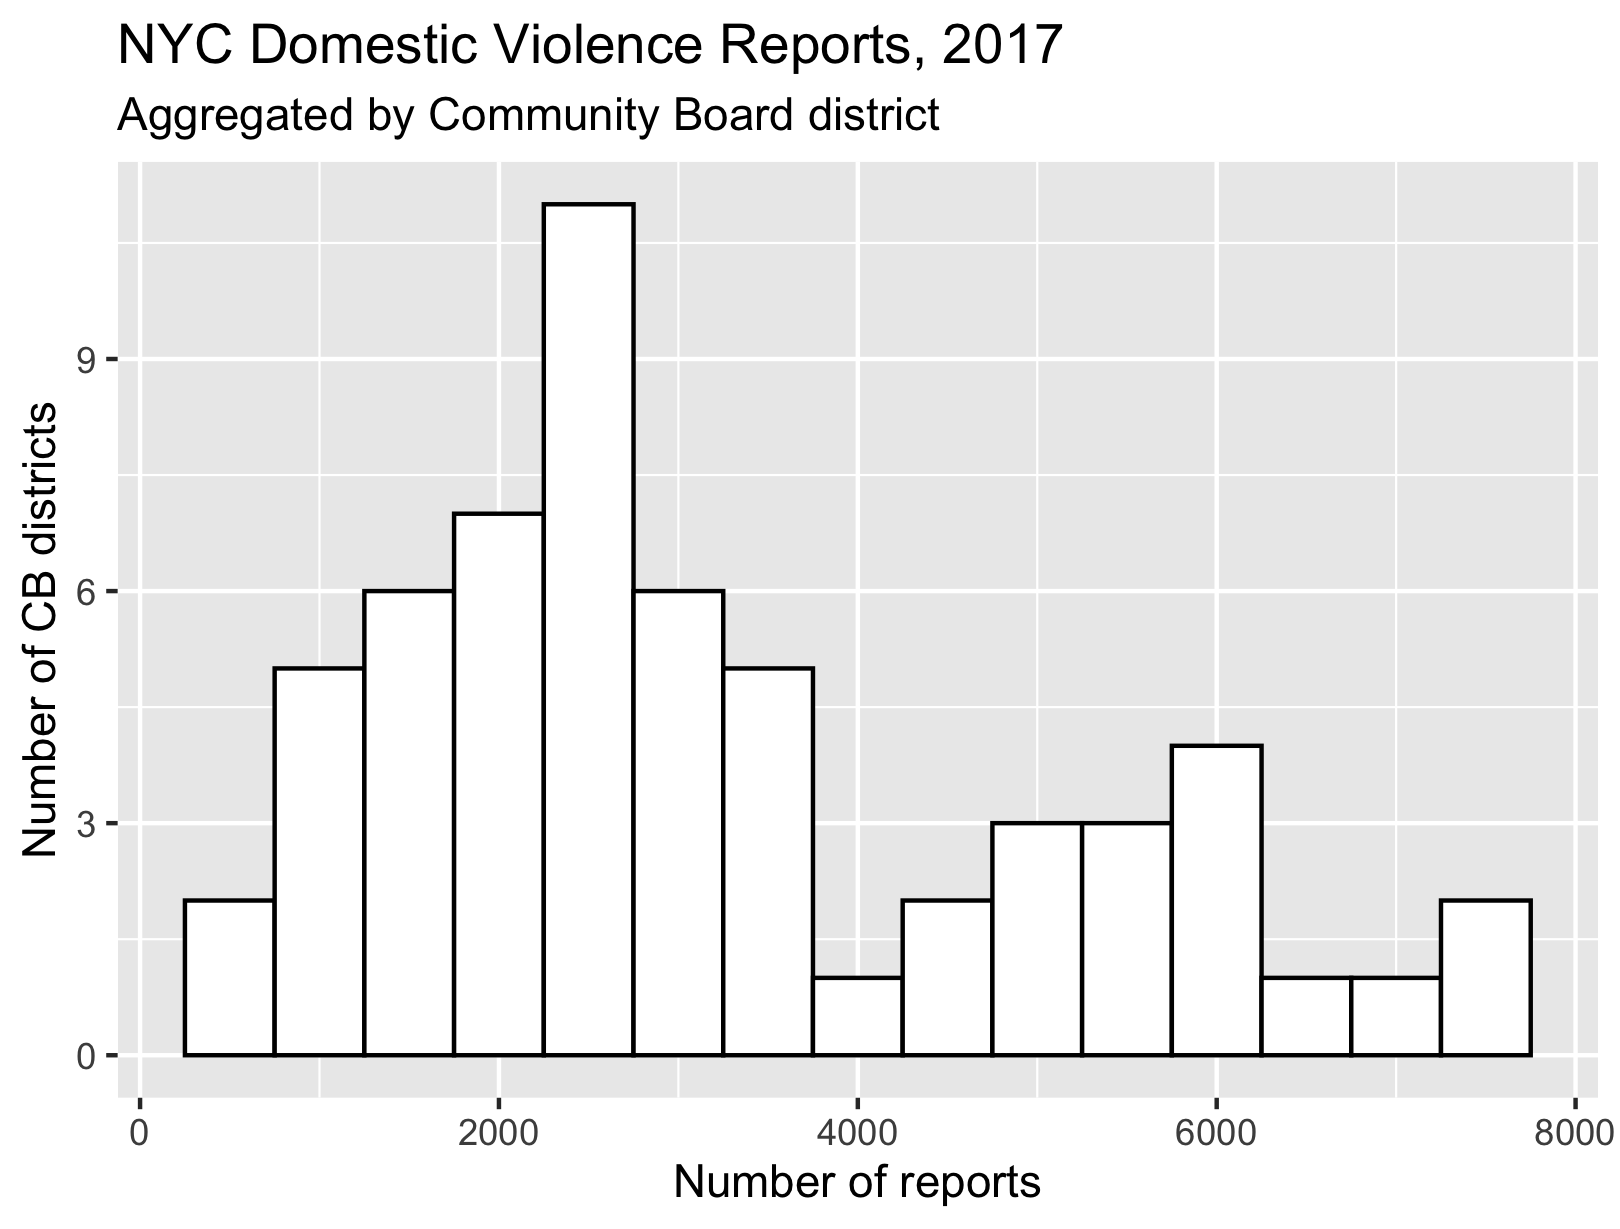 NYC Domestic Violence reports by Community Board 2017